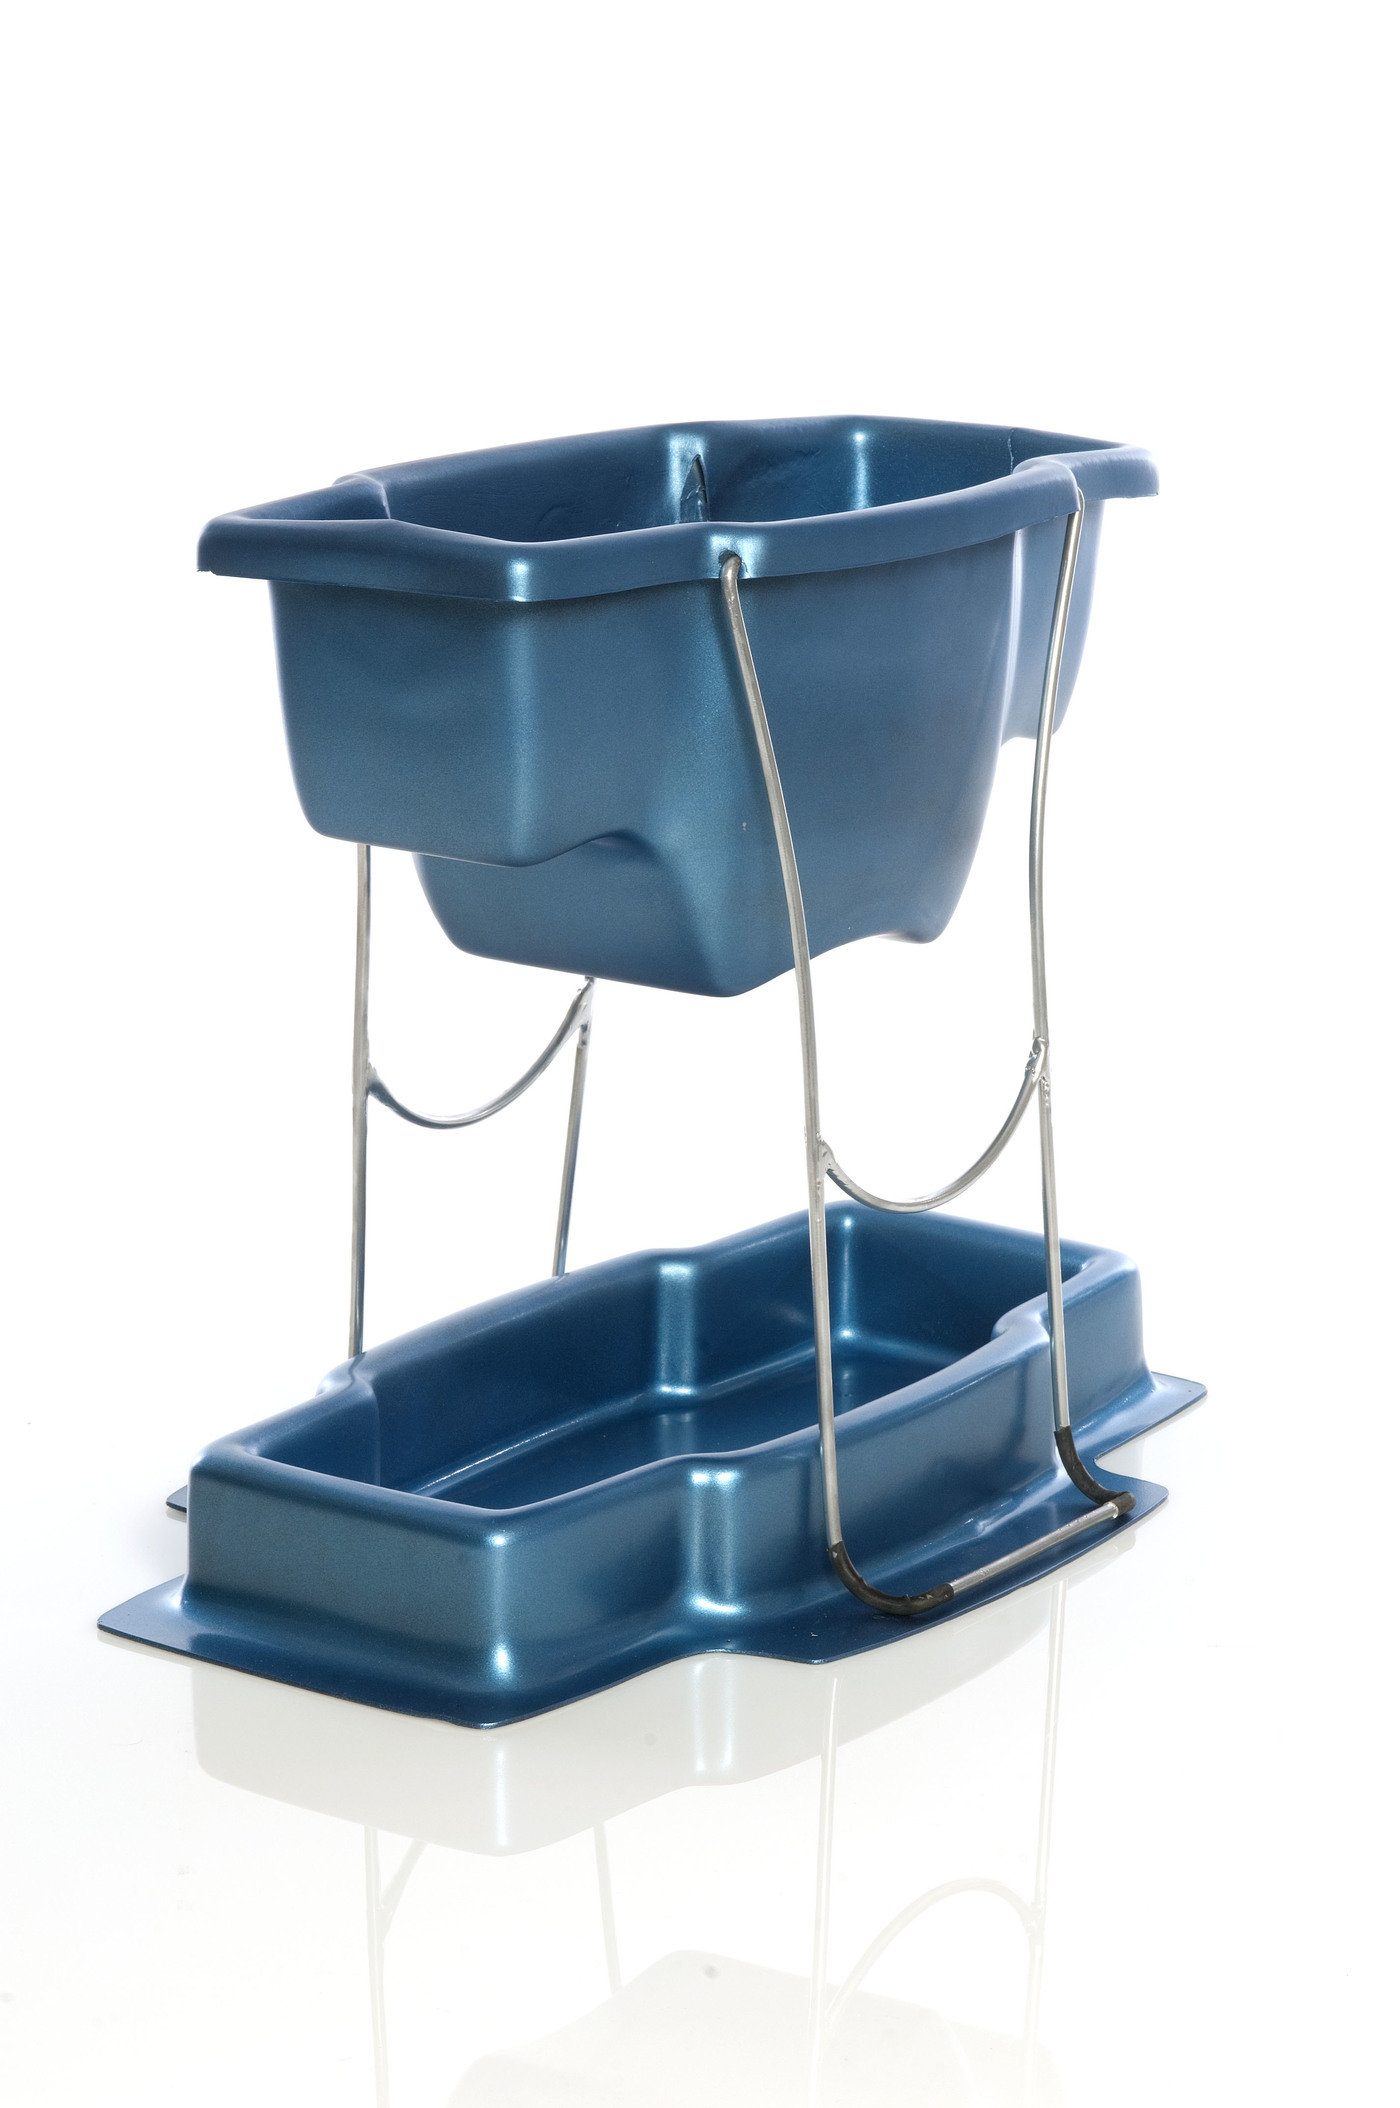 Zenith College Shower Caddy by Kyra Ellzy at Coroflot.com